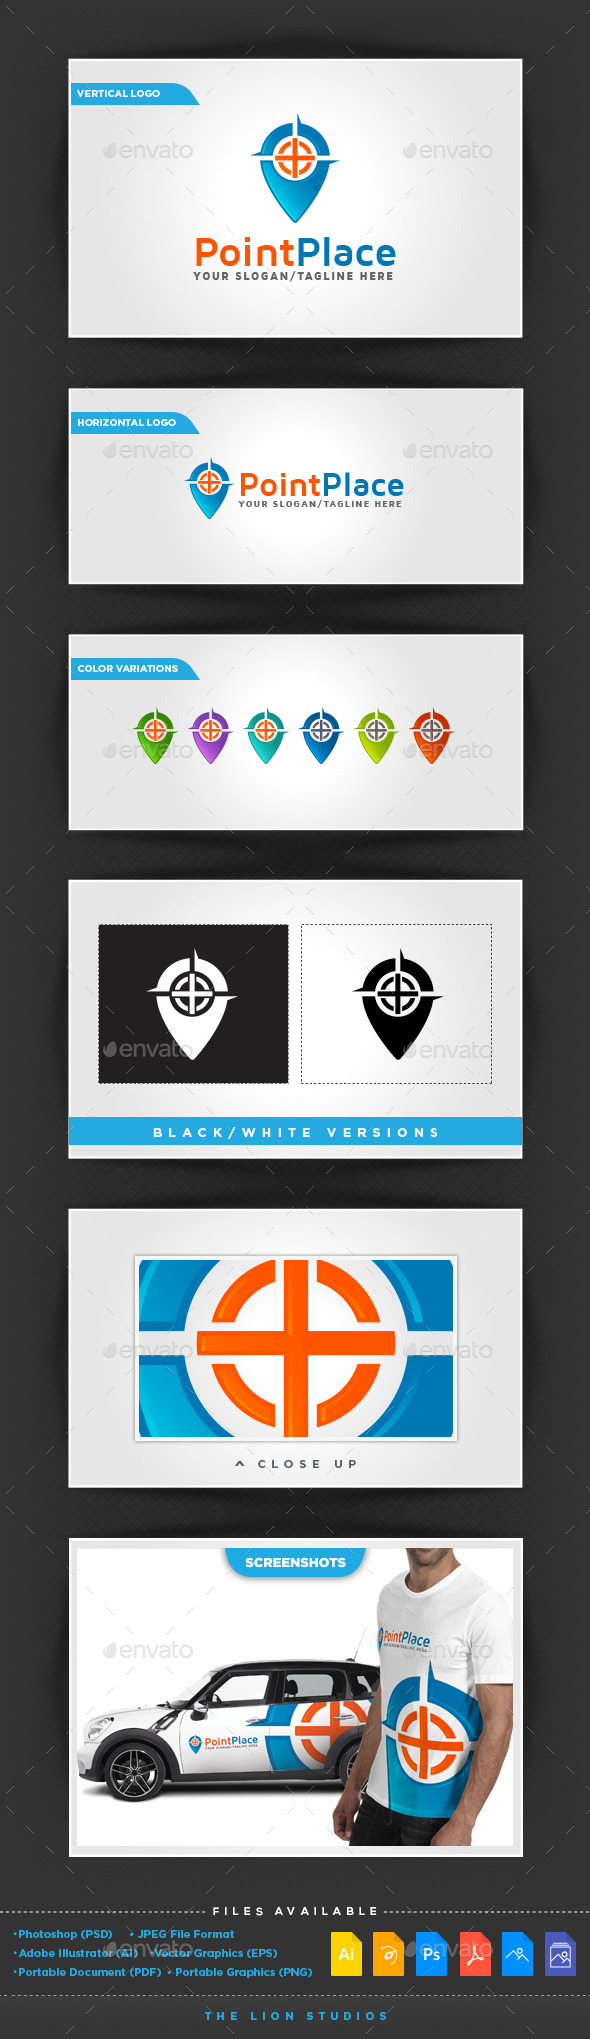 GraphicRiver Point Place Logo 10311588